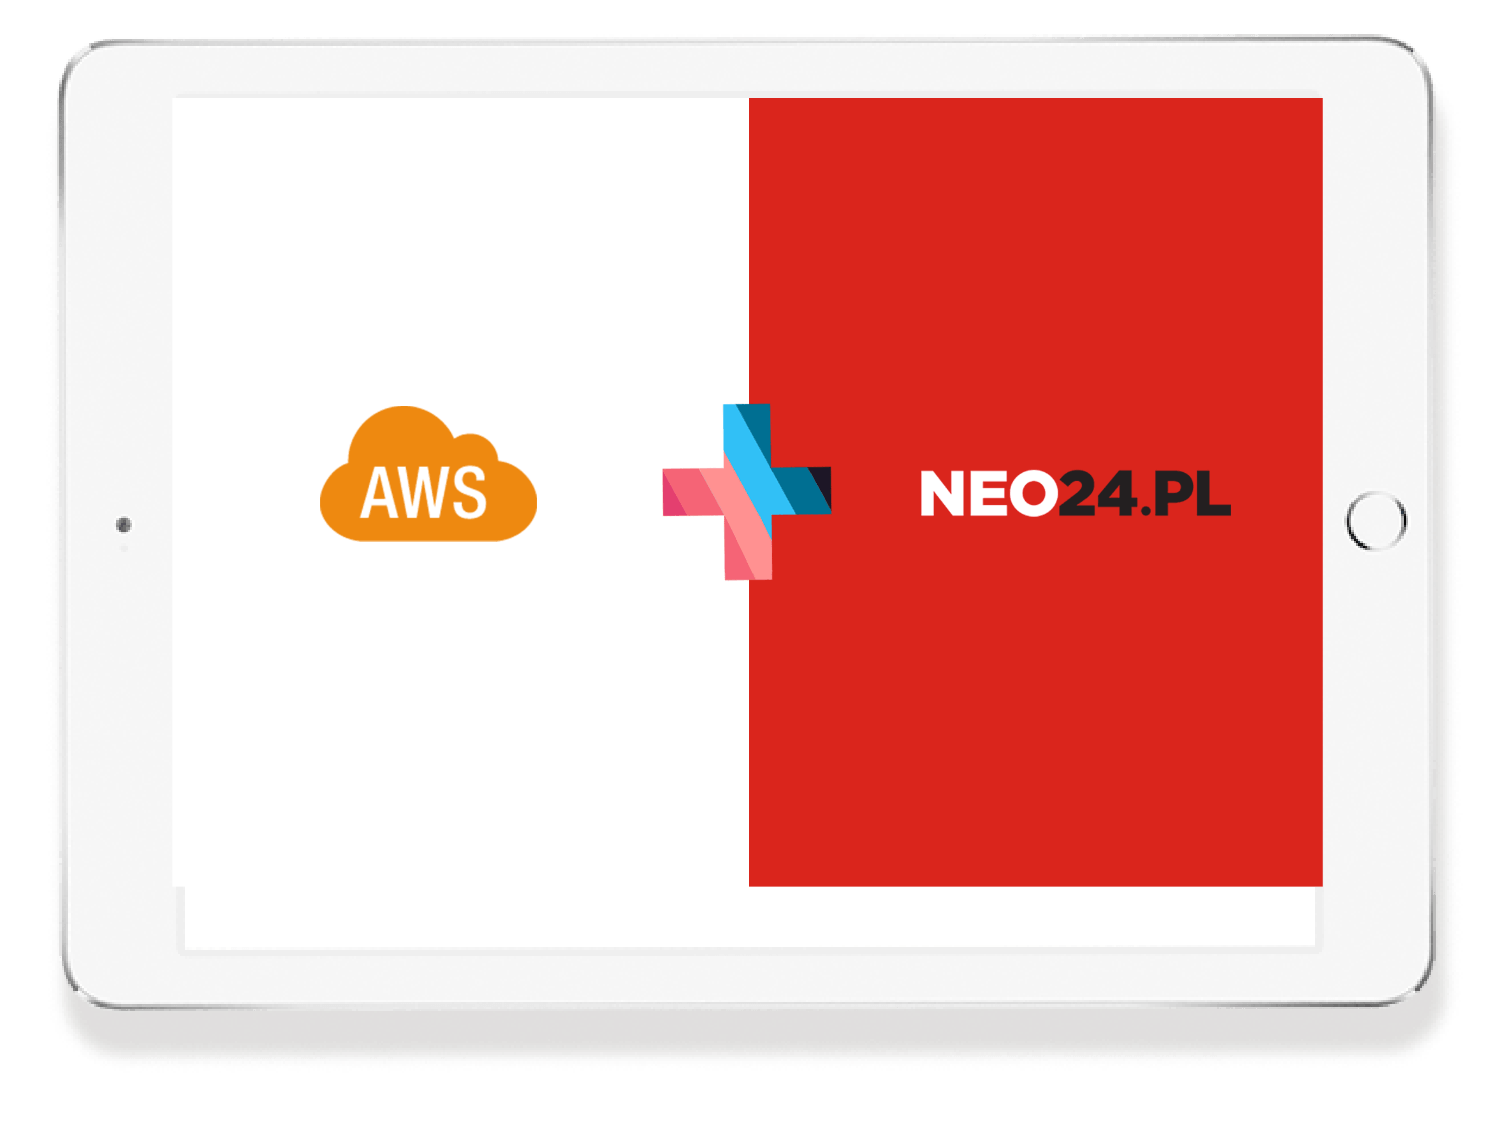 AWS implementation for NEO24.pl